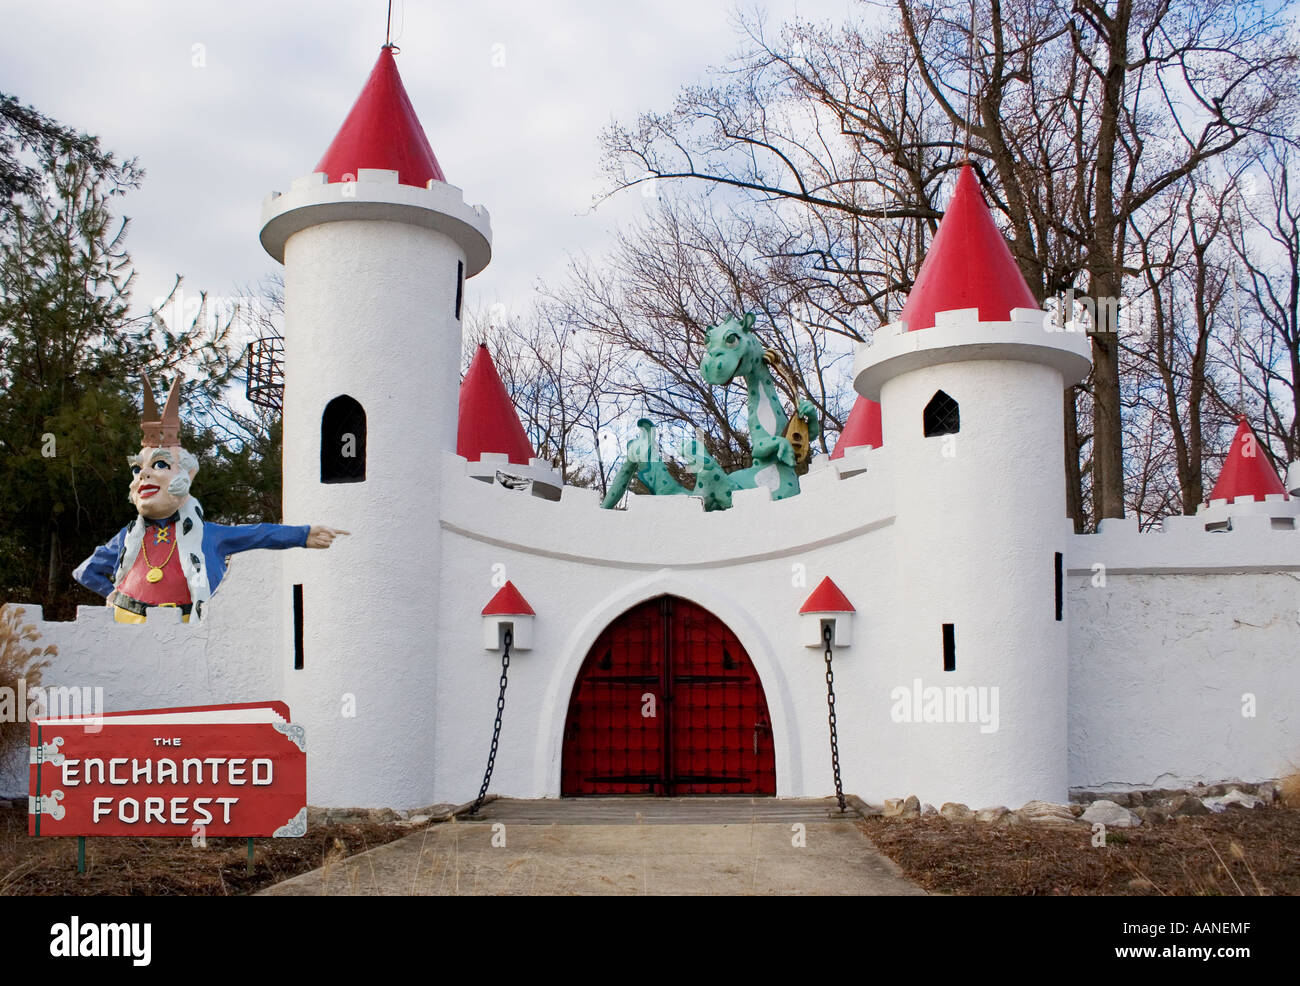 Entrance to the closed fairy tale themed amusement park the Enchanted Forest in Ellicott City Marland - Stock Image